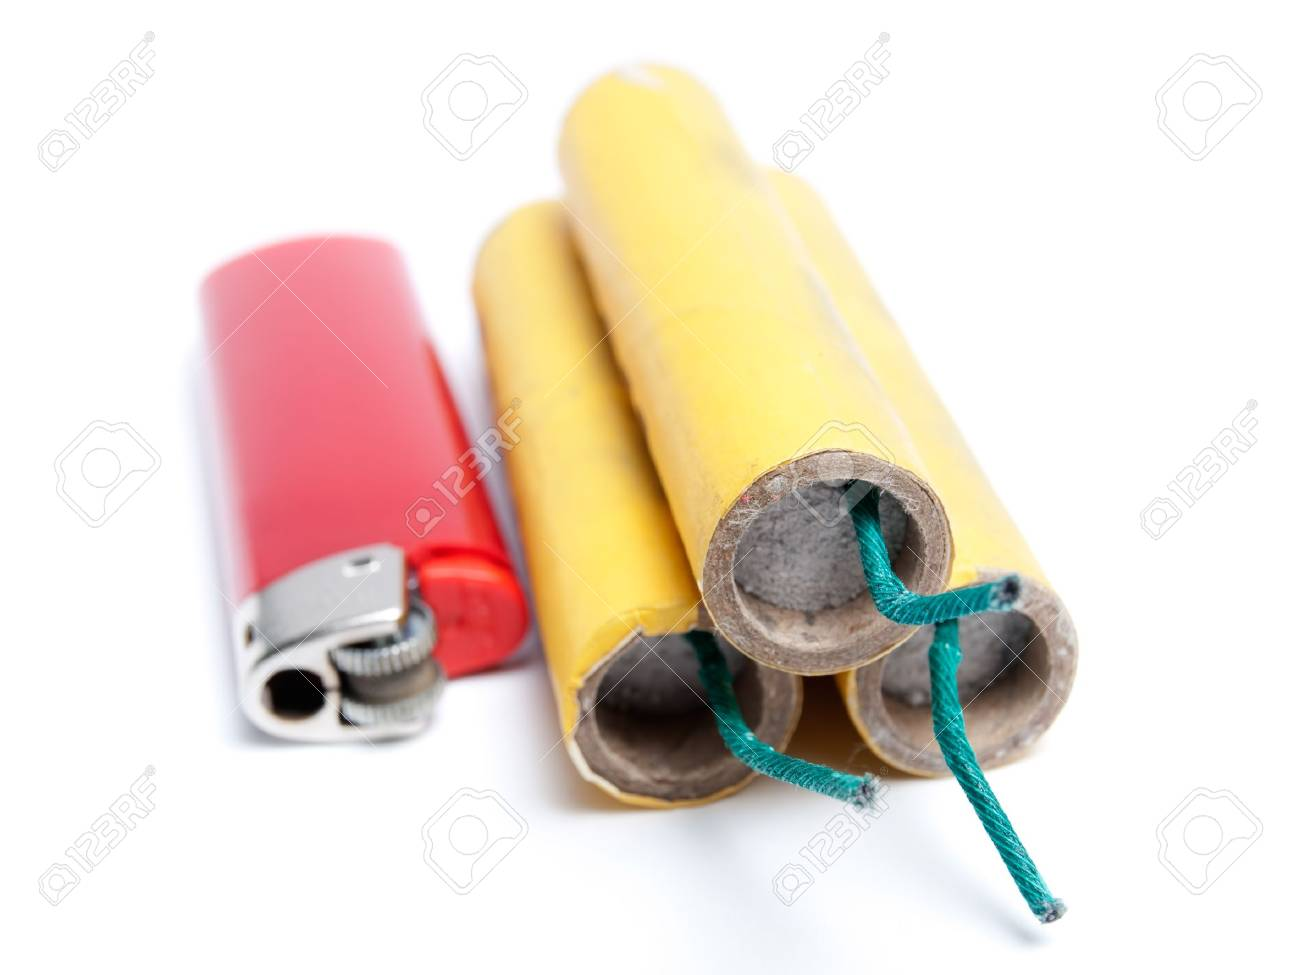 Three firecrackers and lighter on a white background. Stock Photo - 11746940